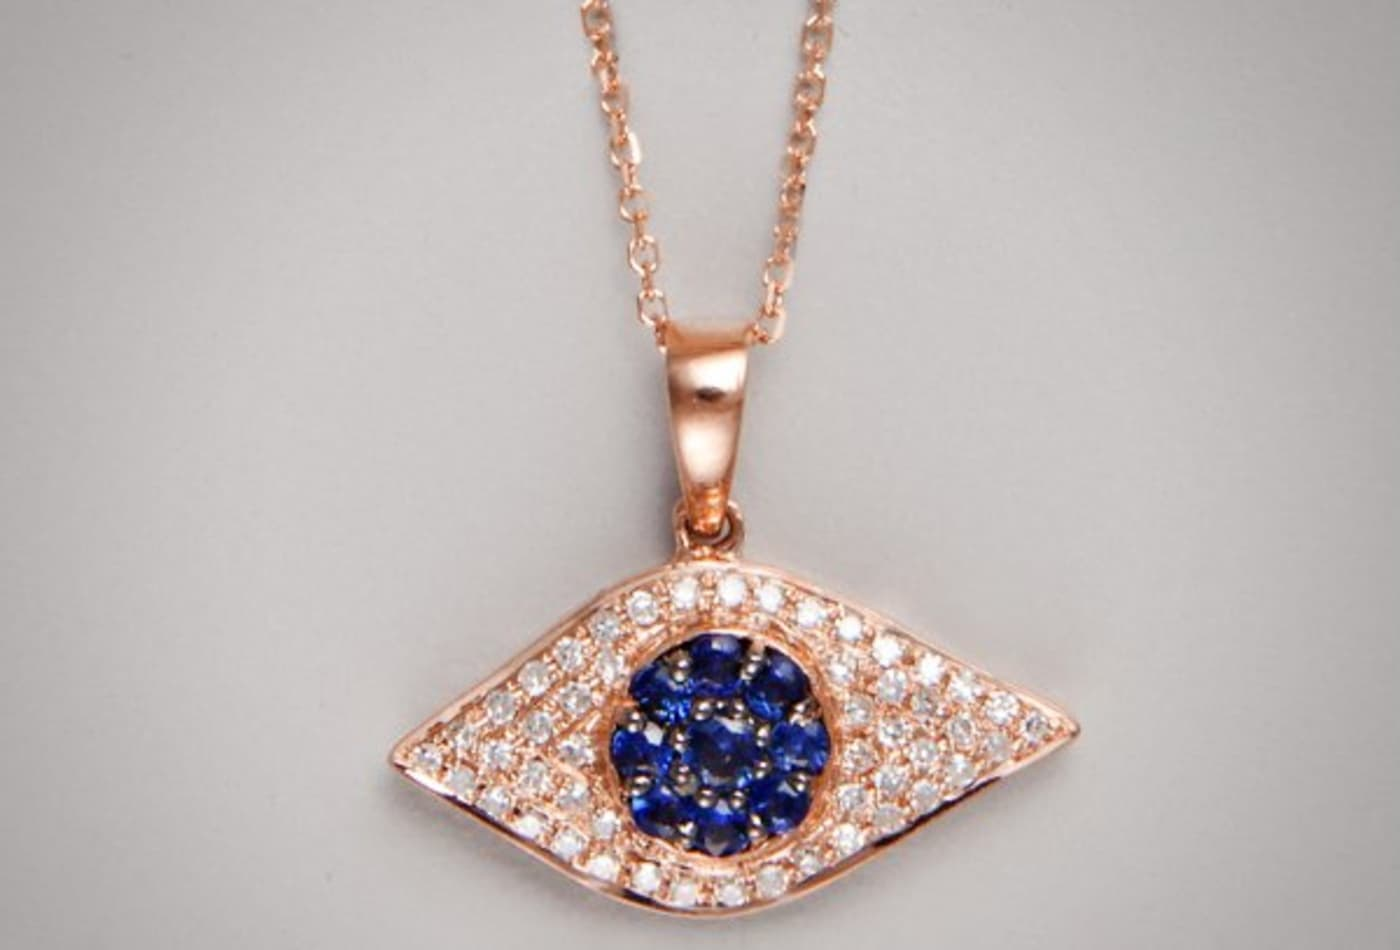 luxury-gifts-2012-kc-designs.jpg